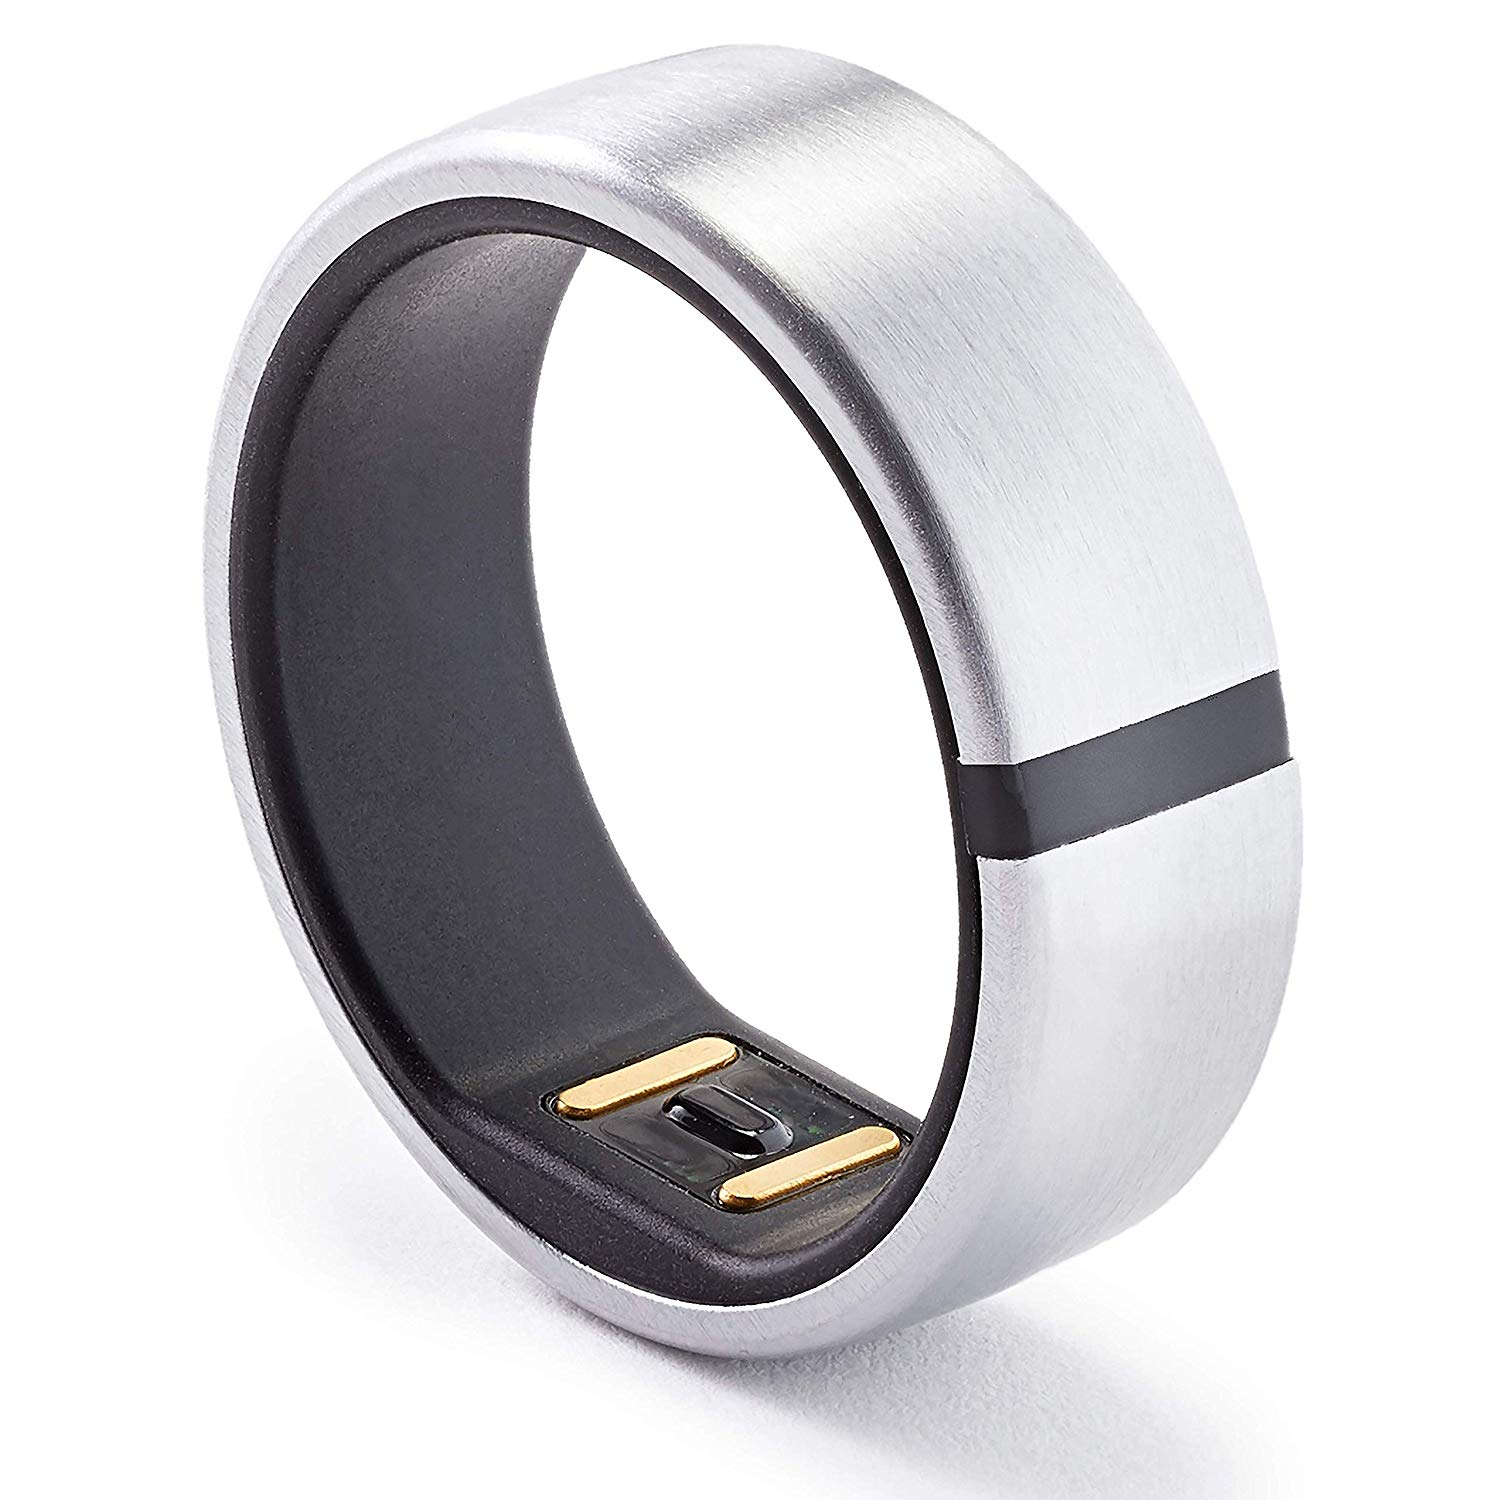 Motiv Ring Fitness, Sleep And Heart Rate Tracker ...